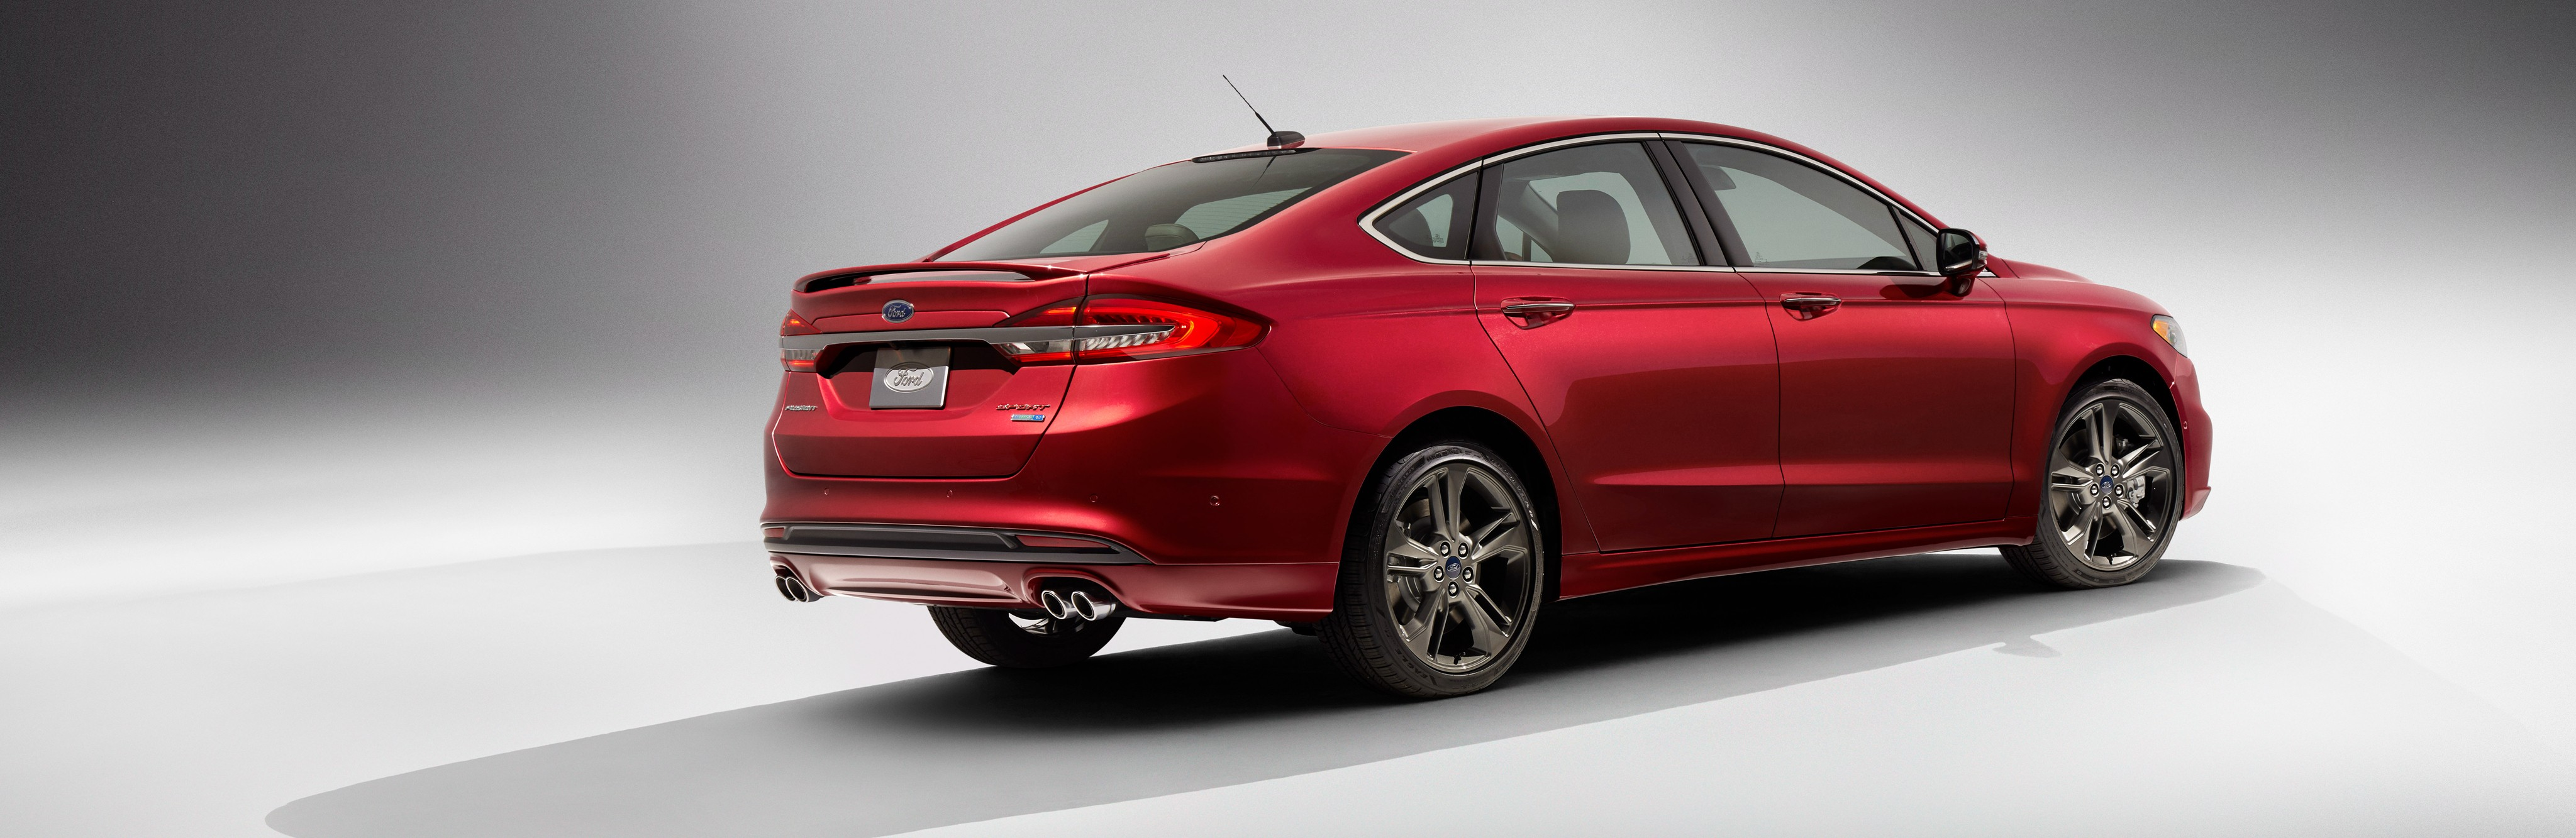 2017 ford fusion sport arrives at dealers in august priced at 34 350 autoevolution